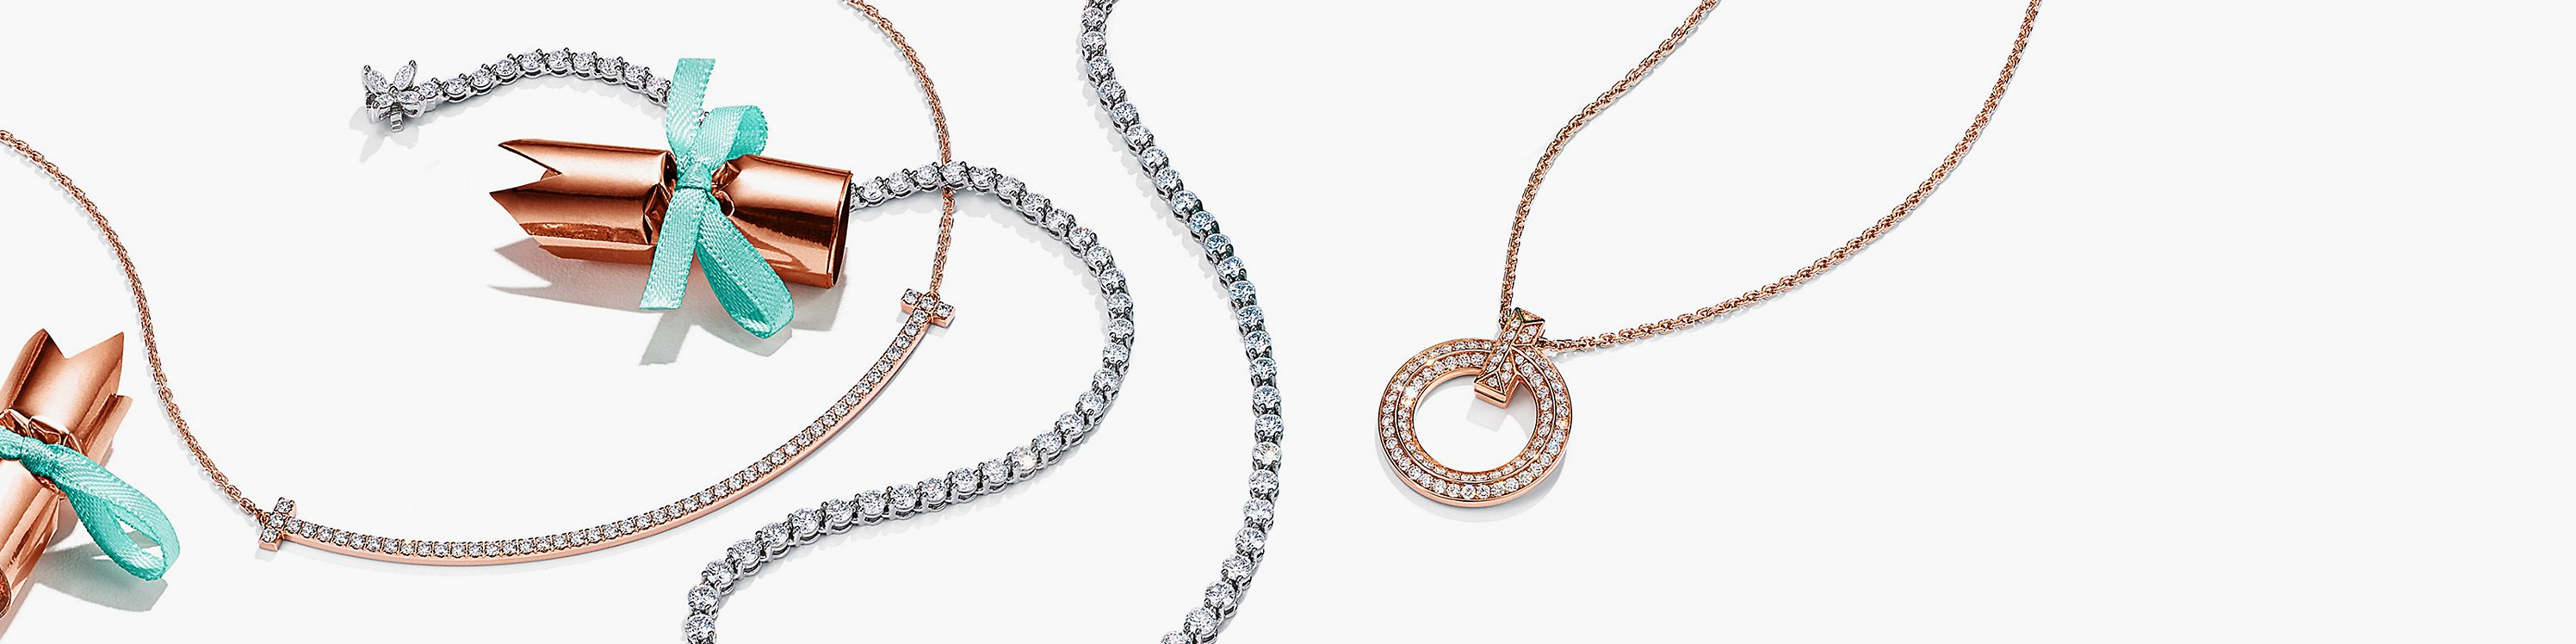 Browse Tiffany & Co. Necklaces & Pendants